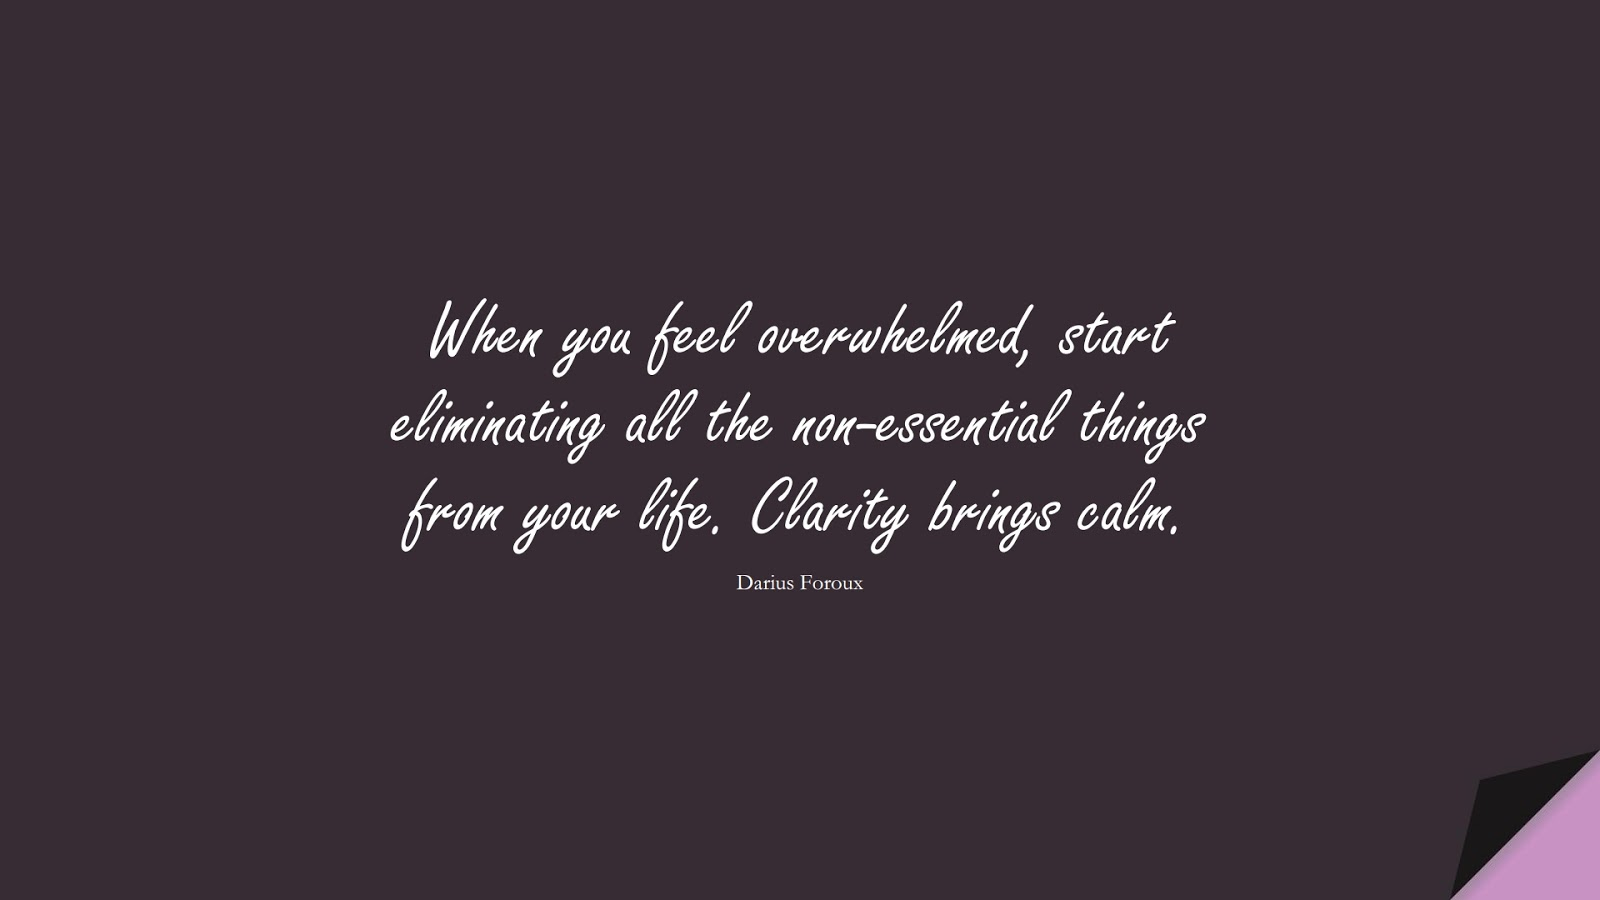 When you feel overwhelmed, start eliminating all the non-essential things from your life. Clarity brings calm. (Darius Foroux);  #StressQuotes